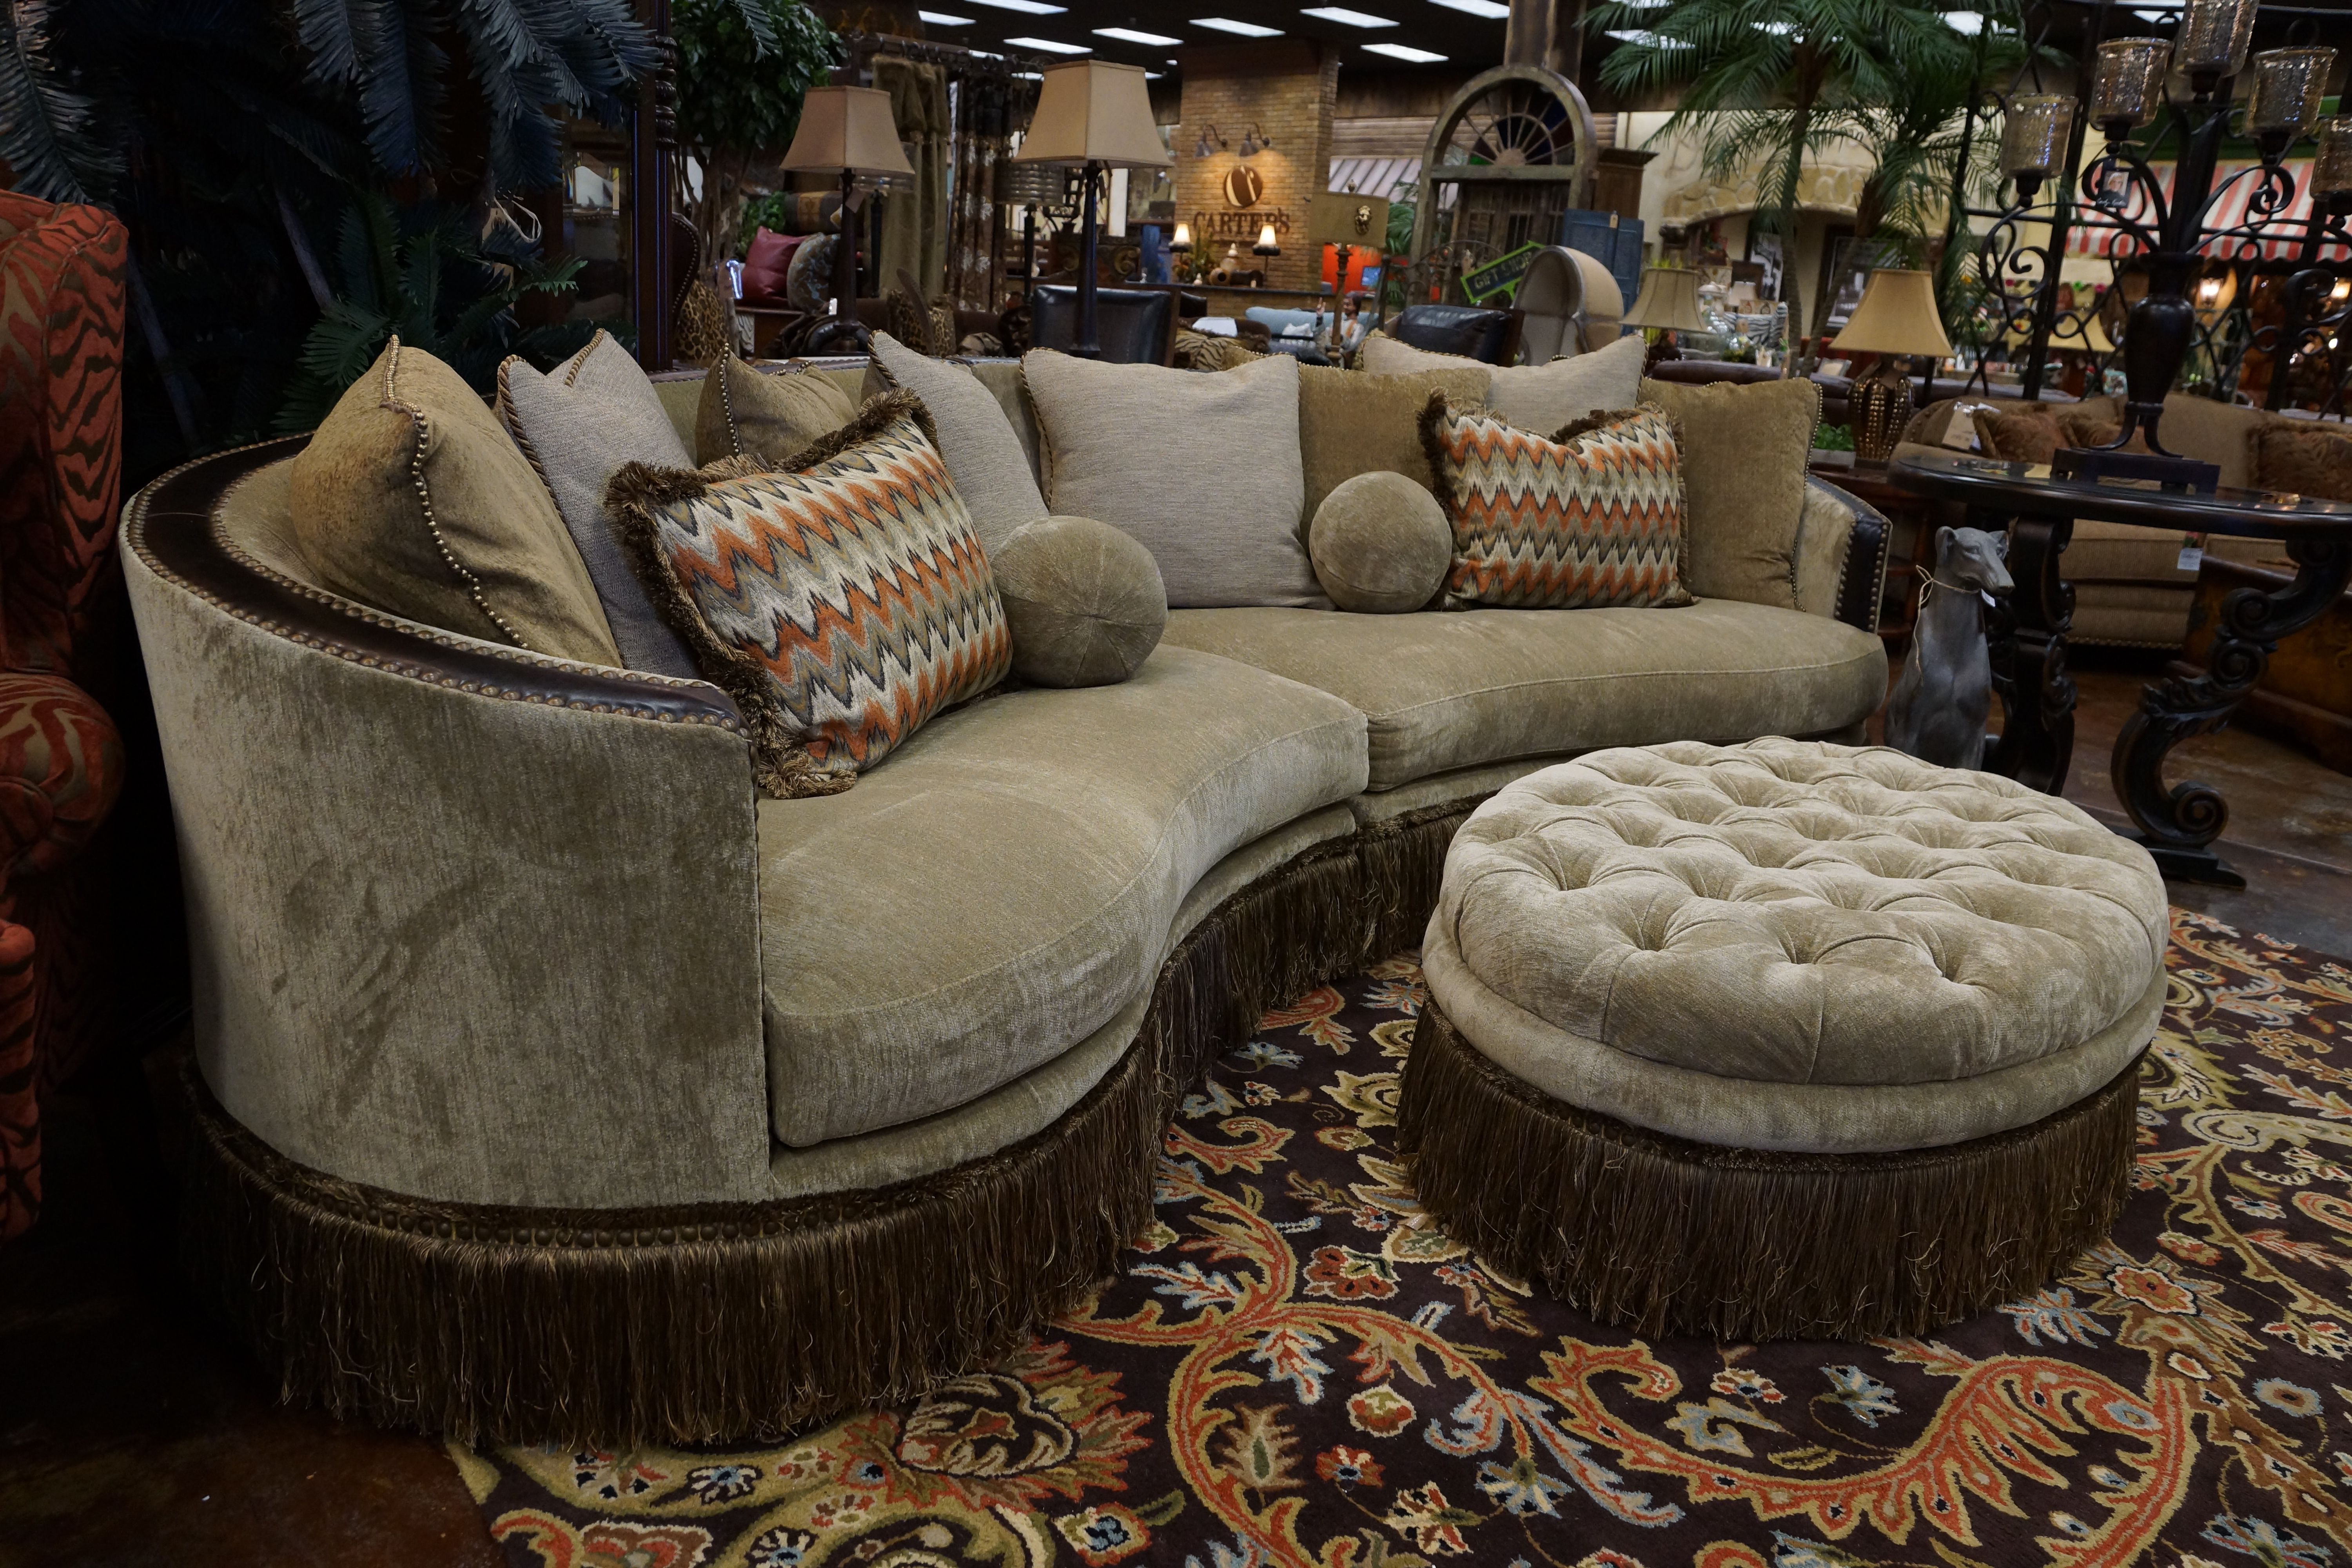 Amazing Available At Carteru0027s Furniture, Midland, Texas 432 682 2843 Http:/